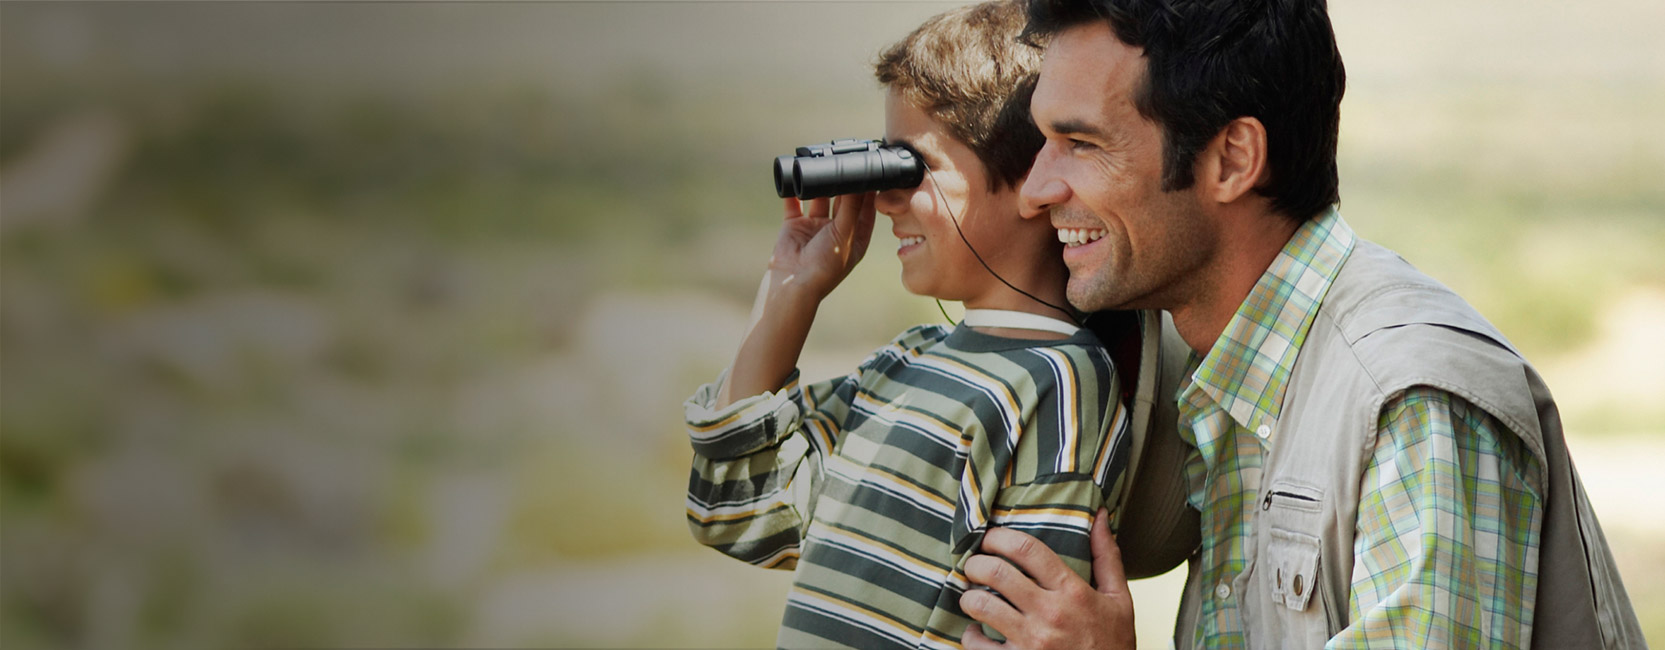 Father and Son Looking through binoculars